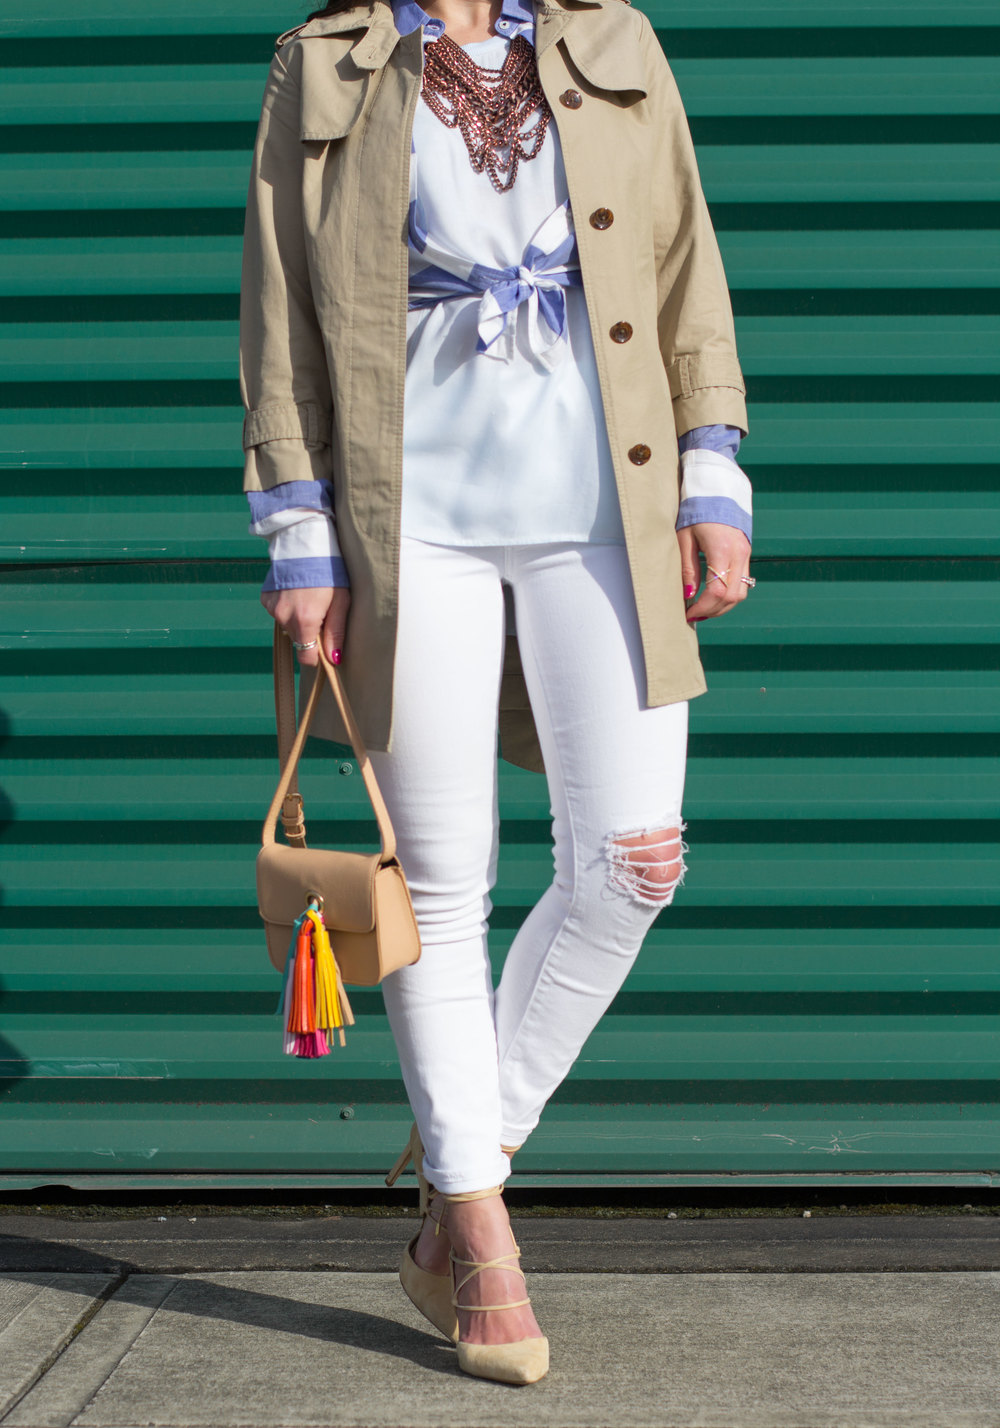 Spring Fashion, Distressed White Skinny Jeans, Sam Edelman Dayna Lace-Up Pumps, DIY Rebecca Minkoff Sofia Crossbody, Banana Republic Trench Coat